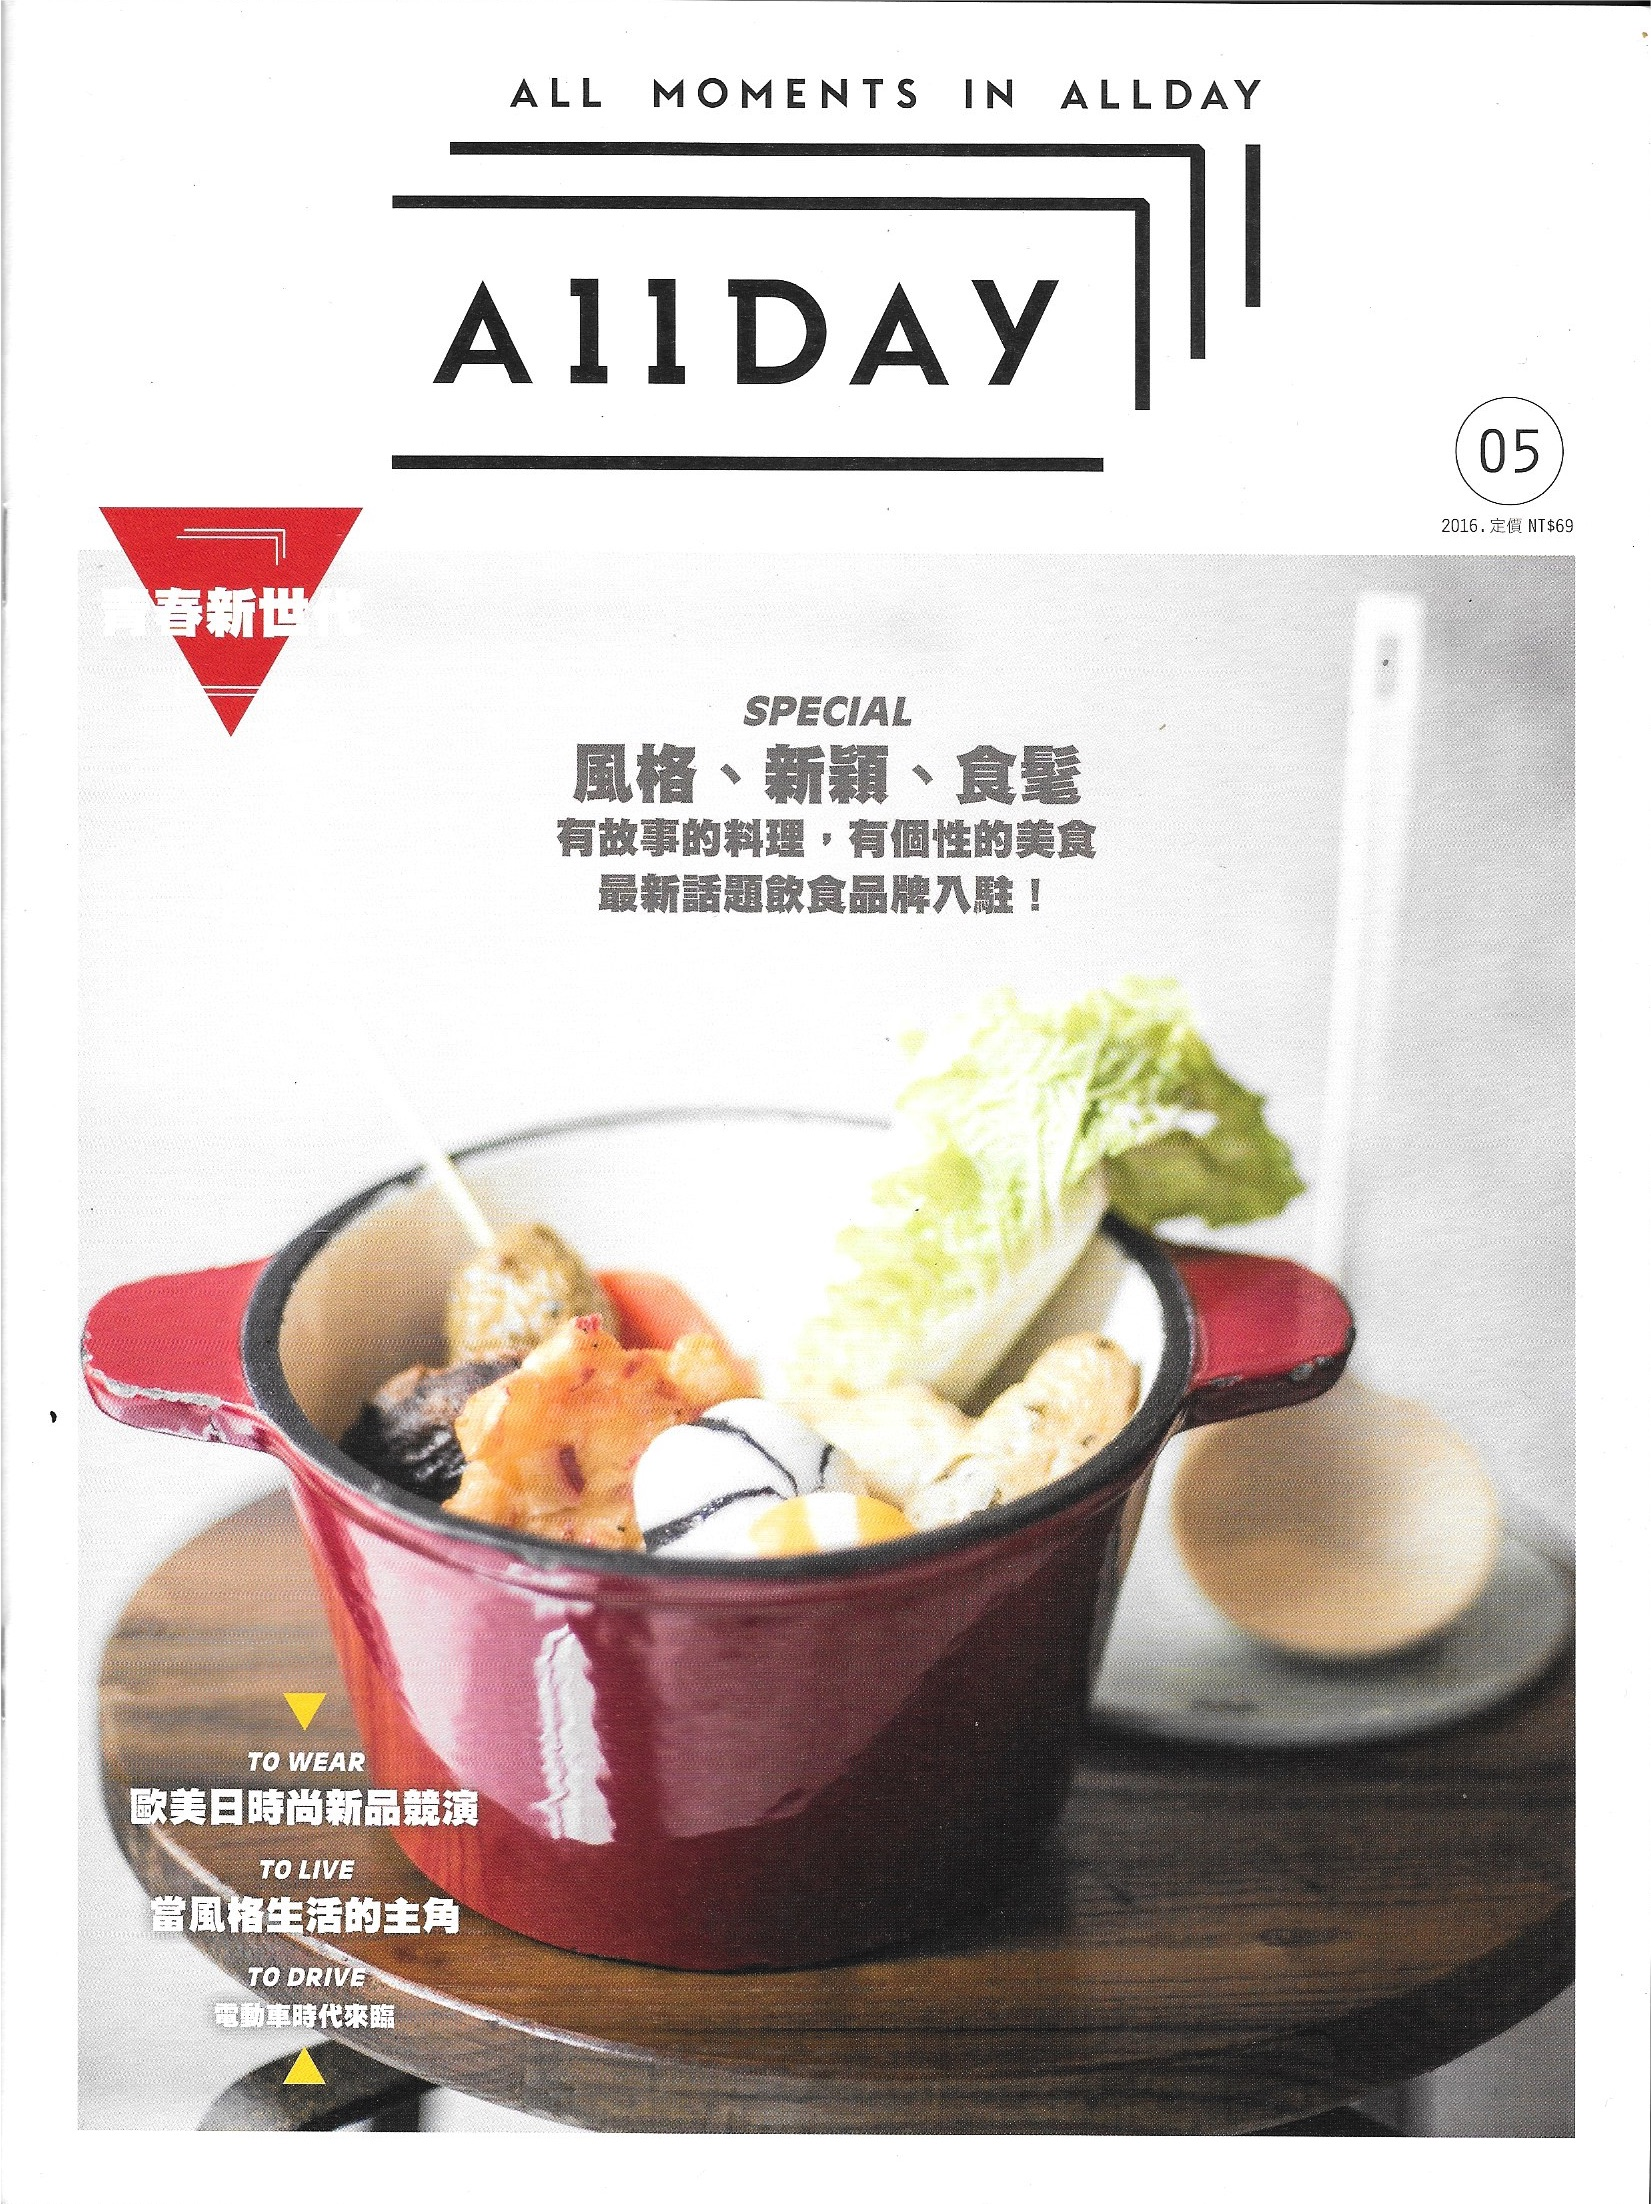 All Day cover.jpg